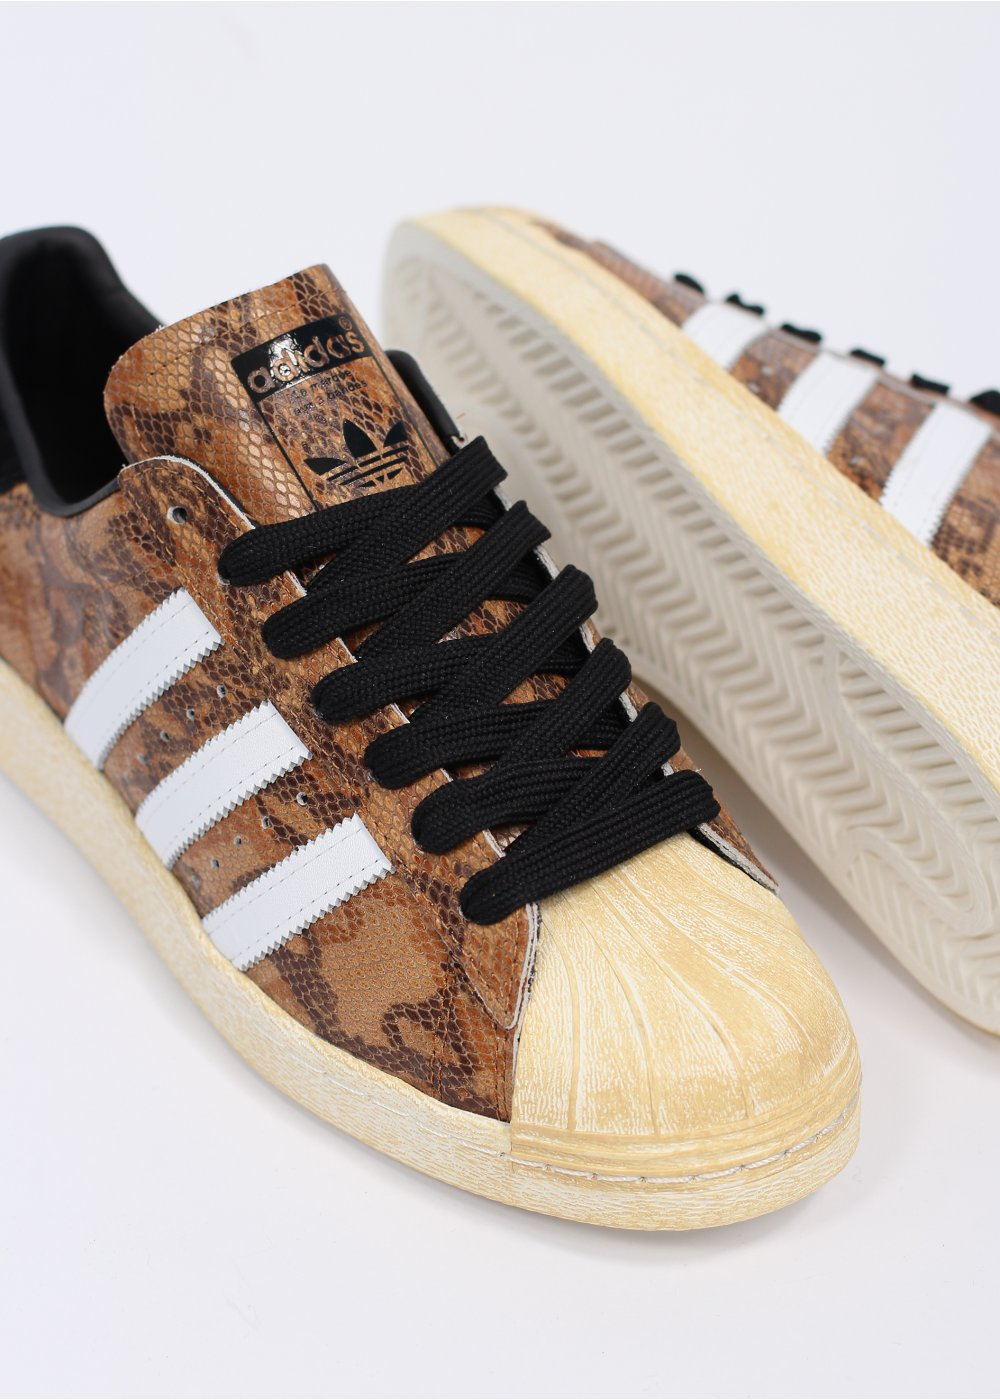 Adidas Snakeskin Trainers 80s Trainers Snakeskin